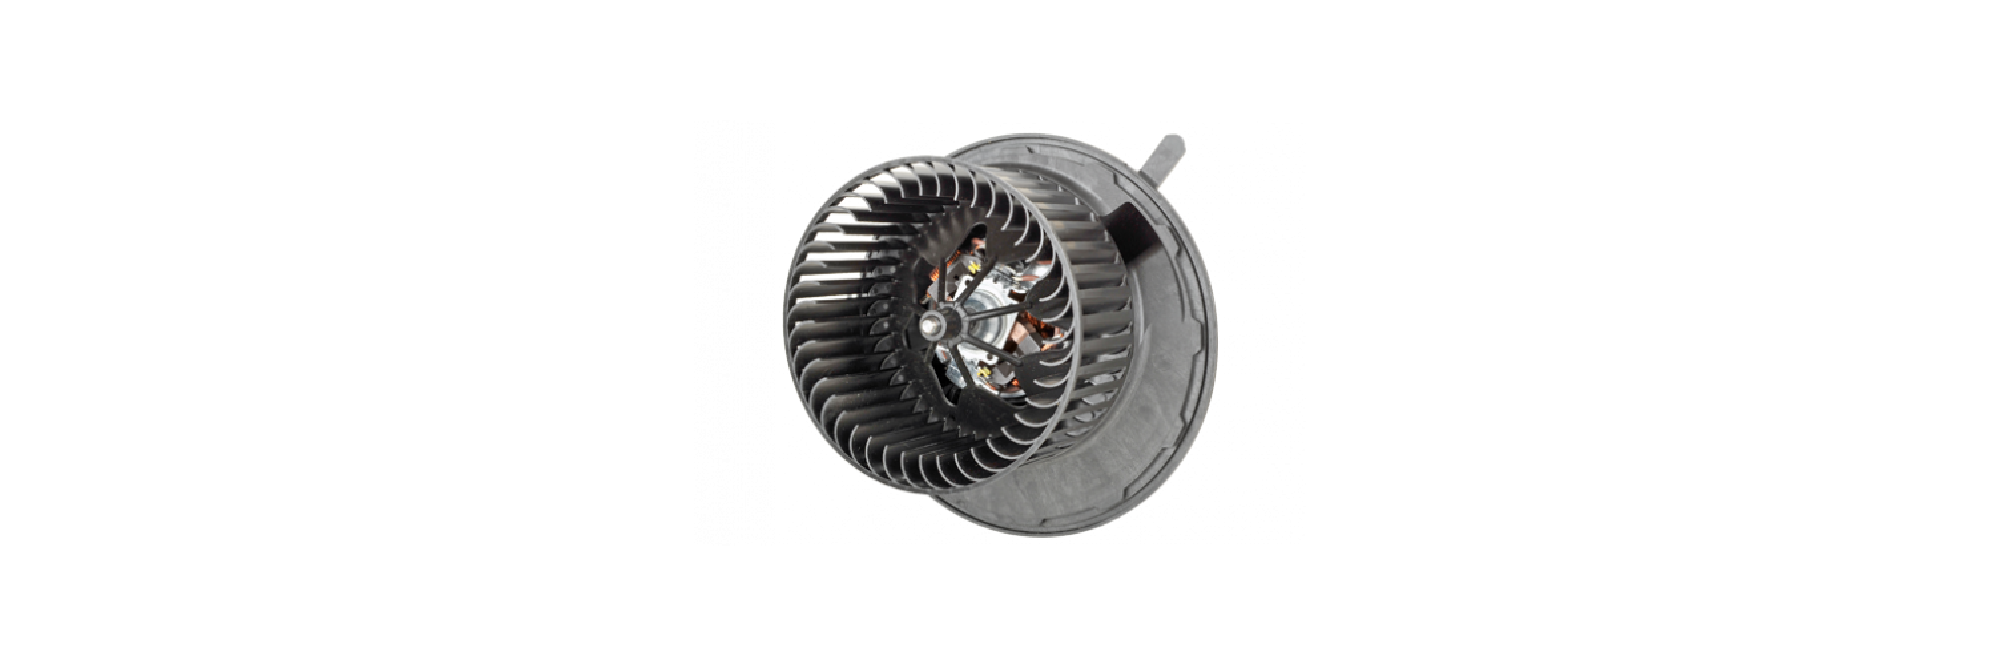 Ventilation blowers for car air conditioning system